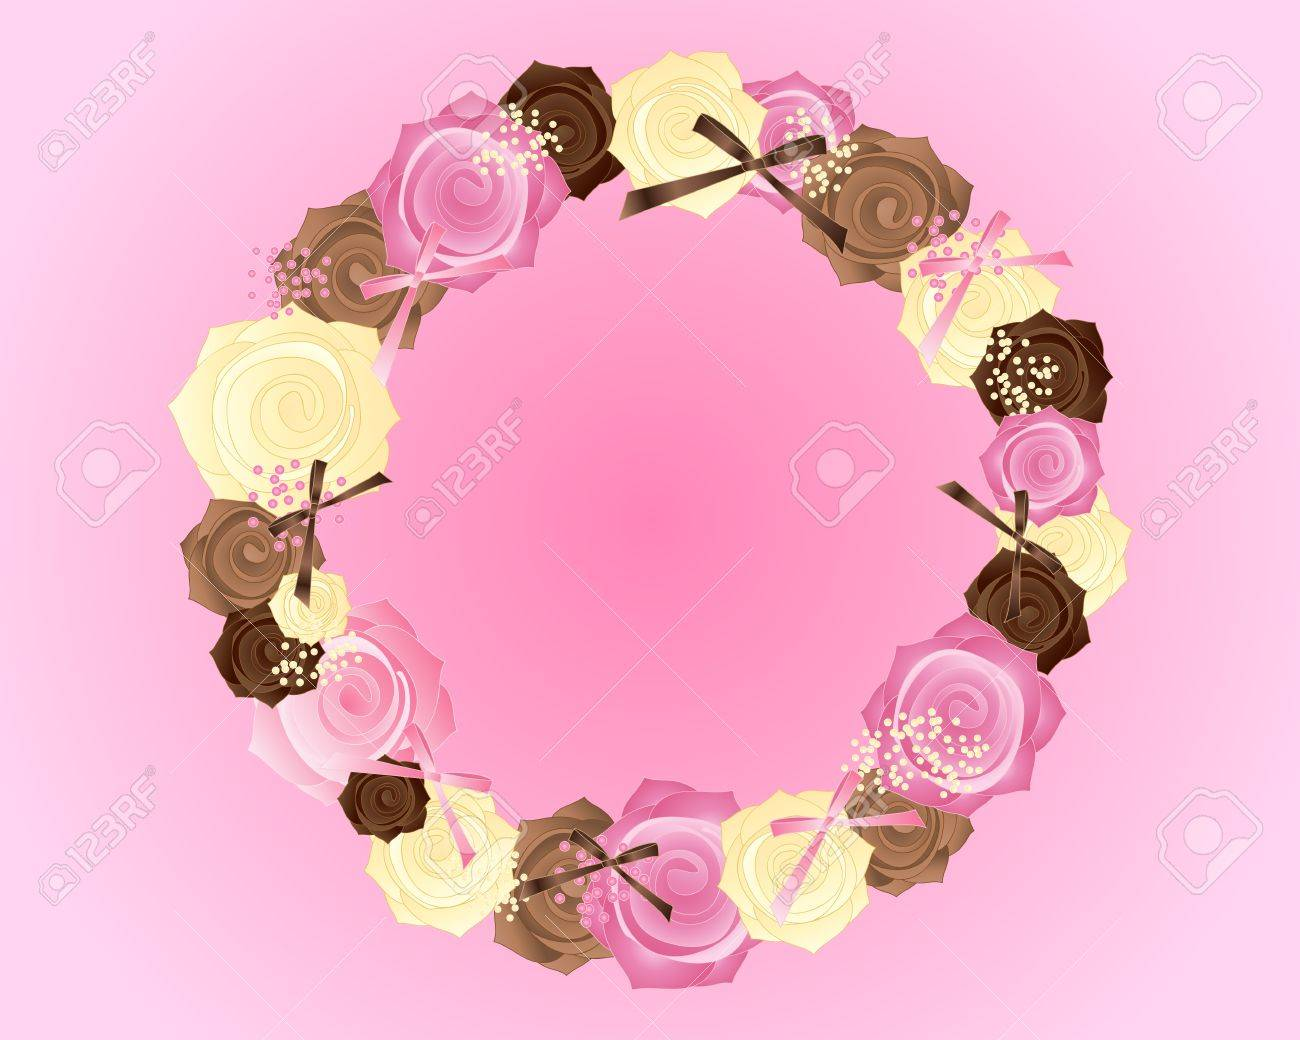 an illustration of a circular posy of pink brown and cream roses with satin bows on a candy pink background Stock Vector - 16061558